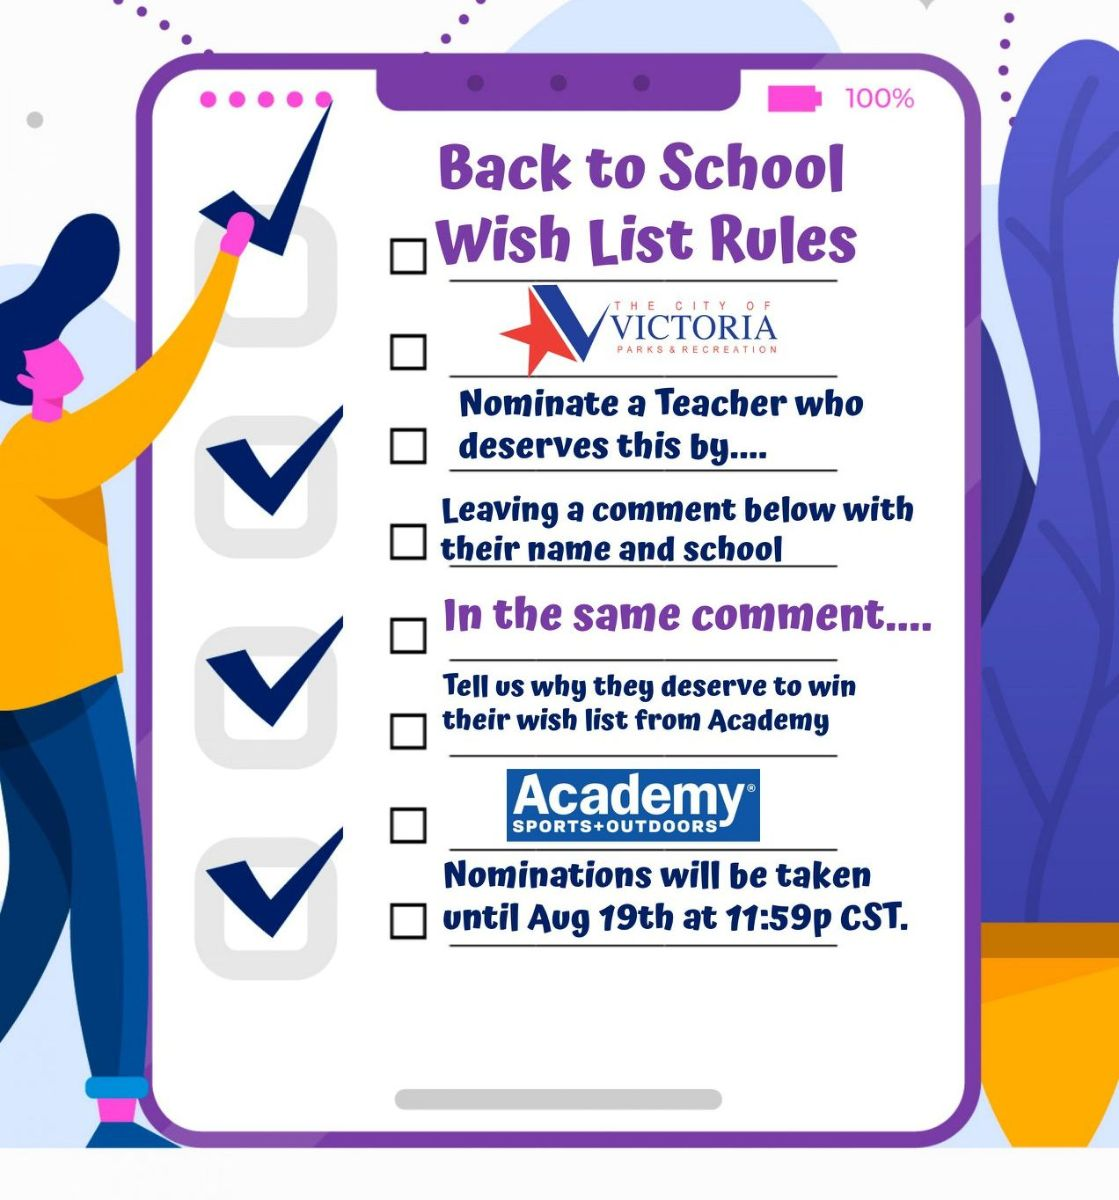 Back to School Wish List competition